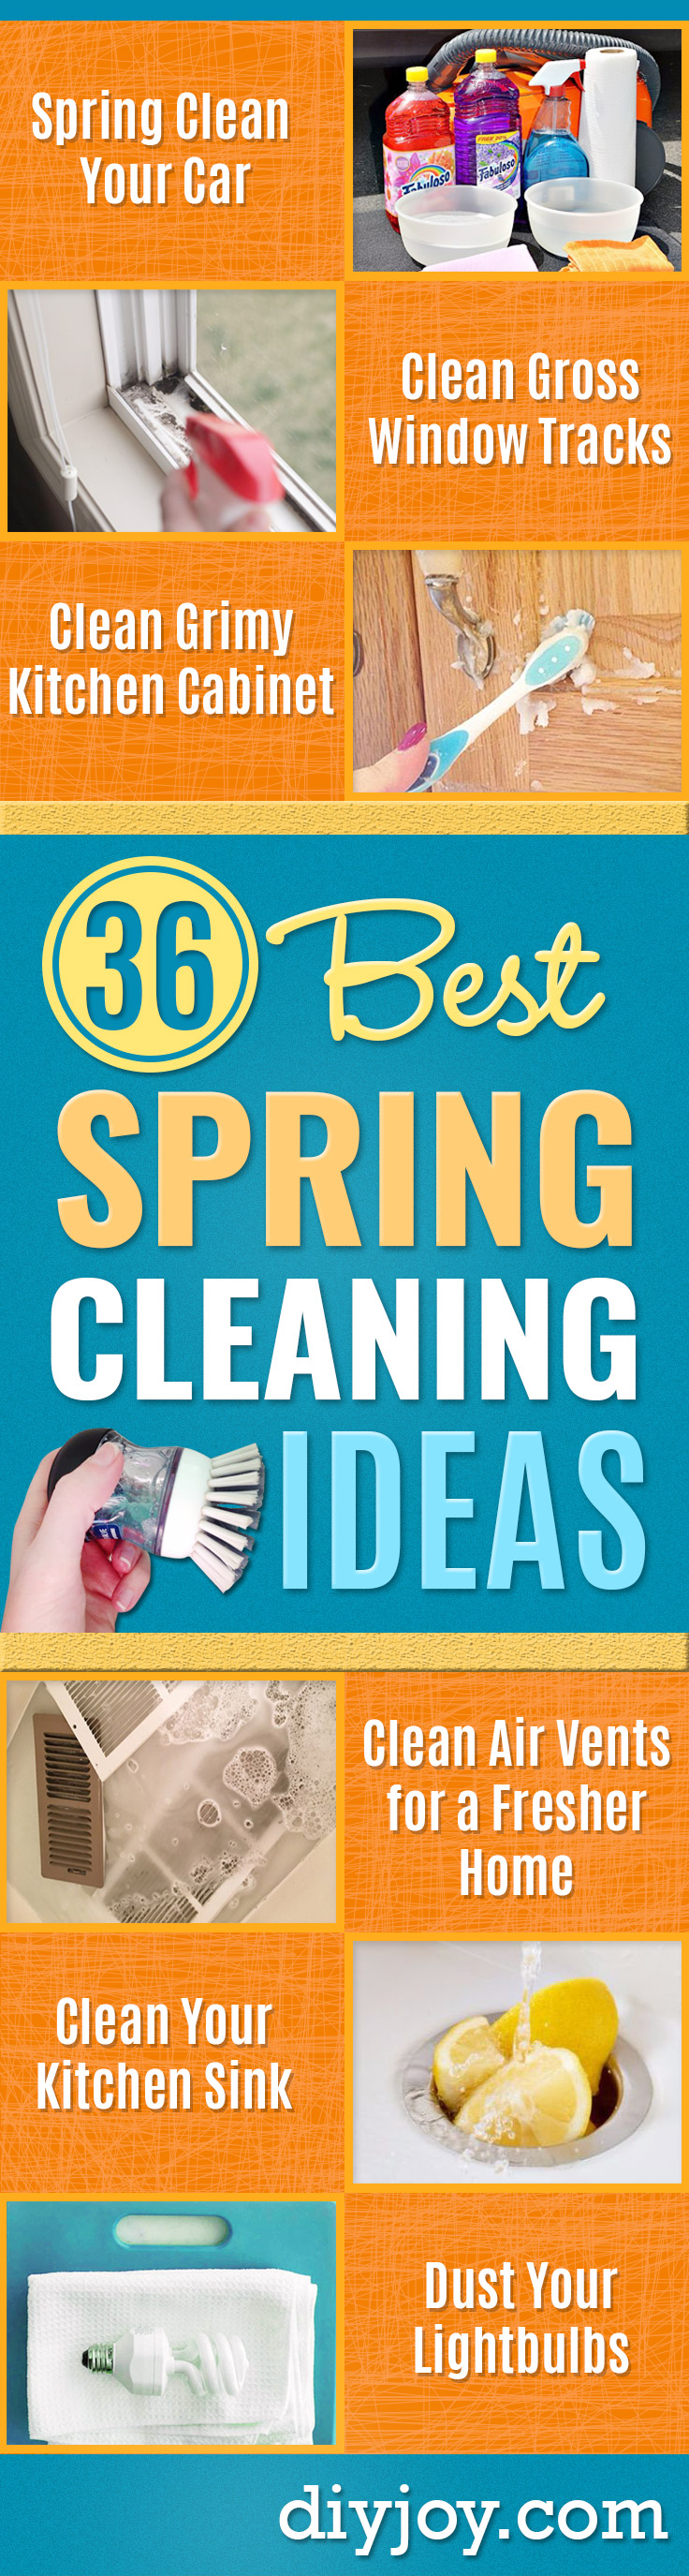 Best Spring Cleaning Ideas - Easy Cleaning Tips For Home - DIY Cleaning Hacks and Product Recipes - Tips and Tricks for Cleaning the Bathroom, Kitchen, Floors and Countertops - Cheap Solutions for A Clean House